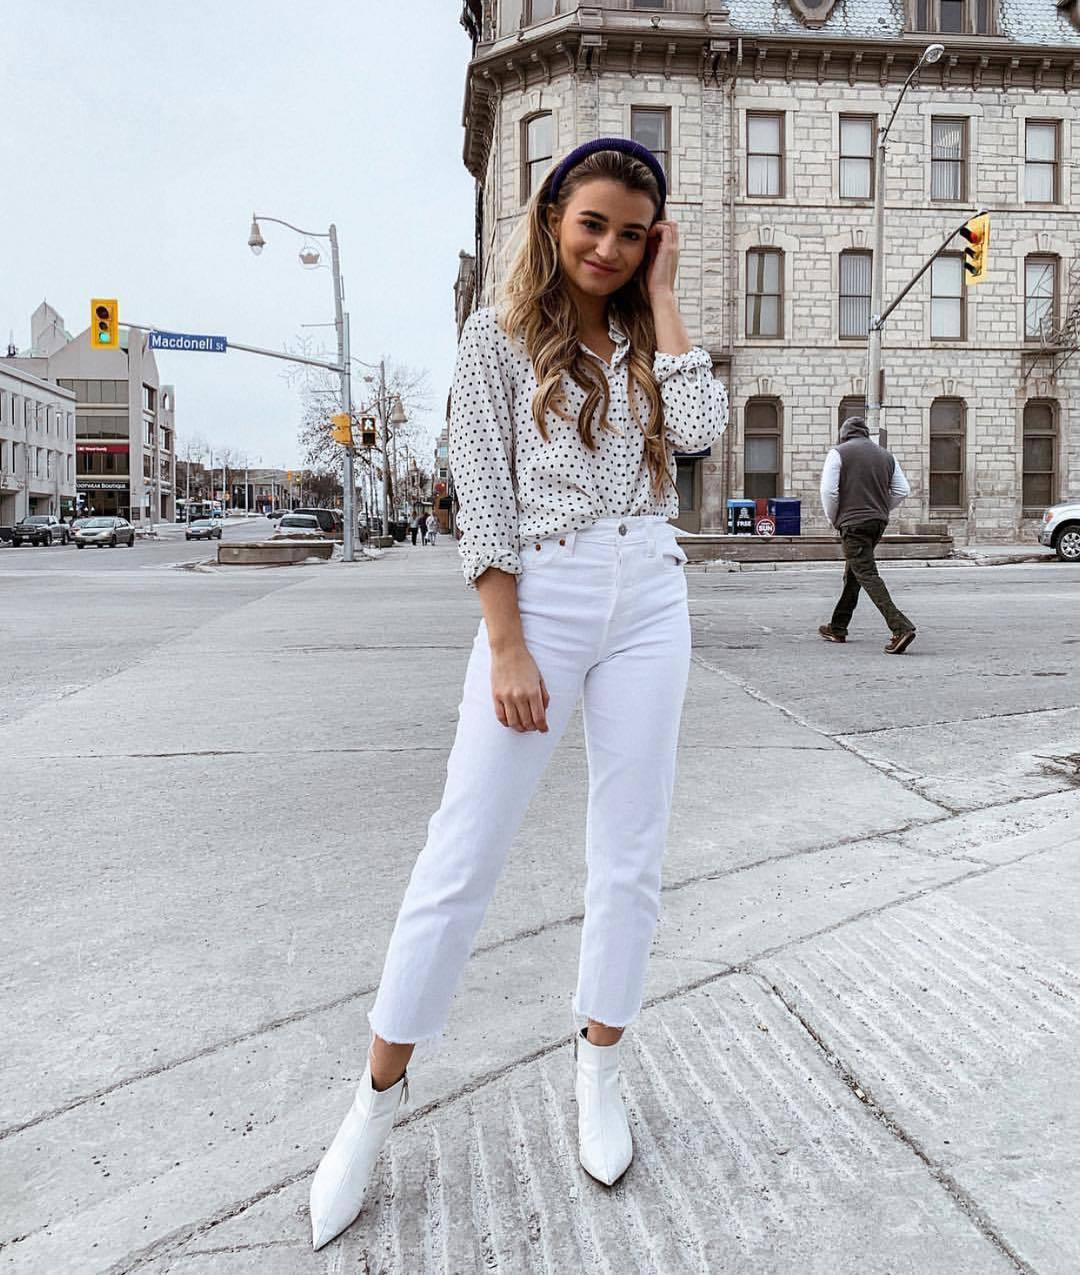 jeans white jeans high waisted jeans cropped jeans levi's ankle boots white boots white shirt polka dots